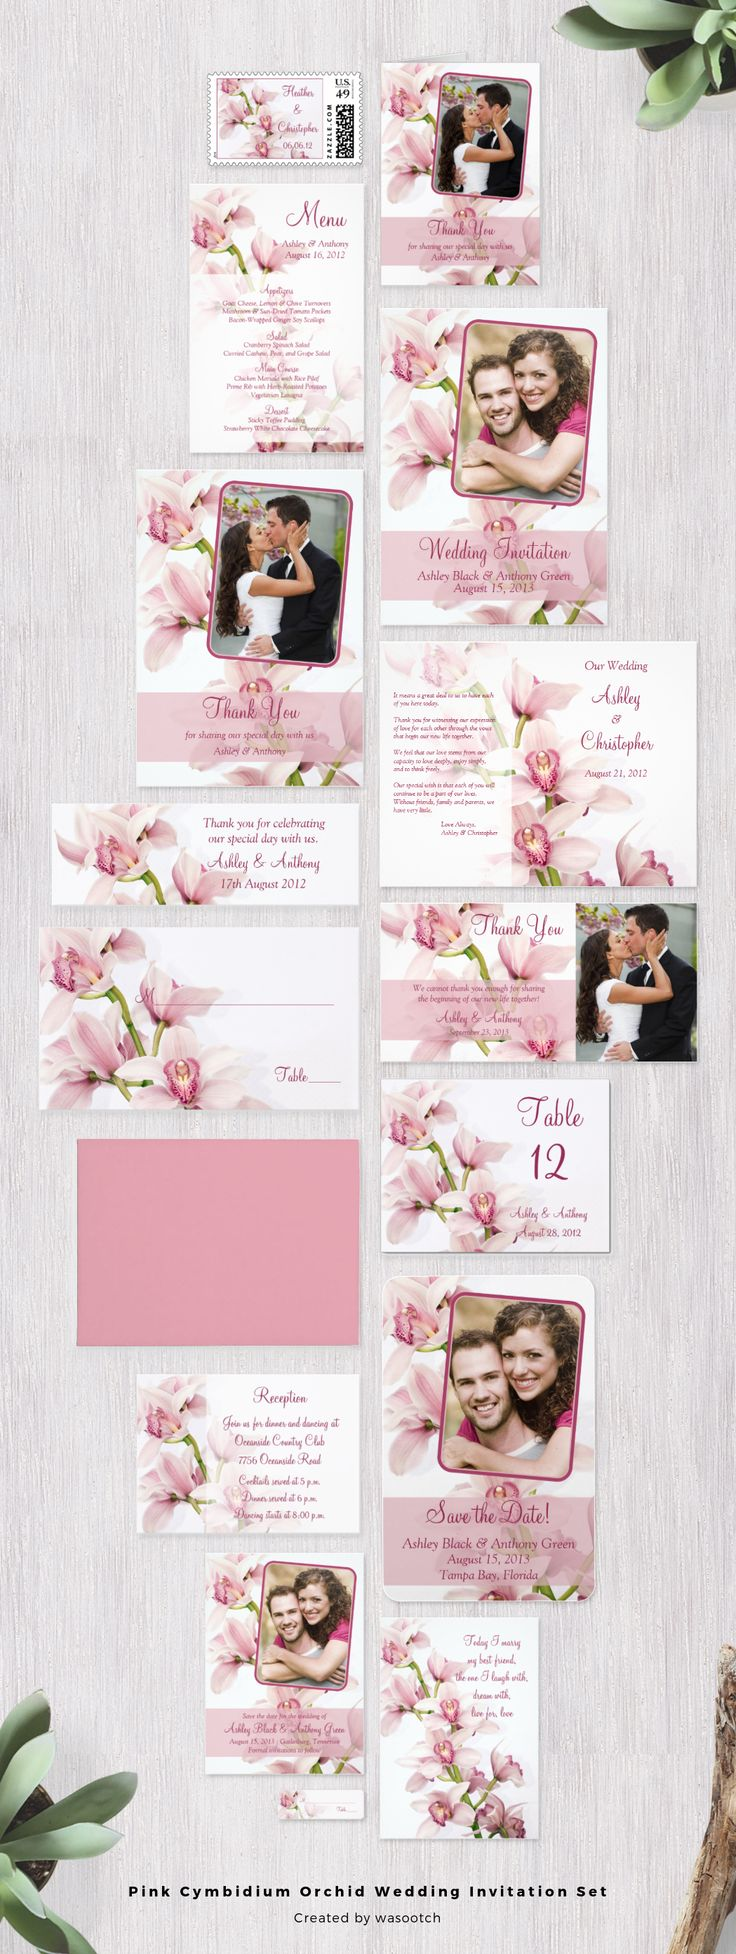 Pink cymbidium orchid tropical flower wedding invitation set. This orchid wedding invitation set has many matching items to choose from. Perfect for a tropical wedding or a wedding where orchids are used as the wedding flower.